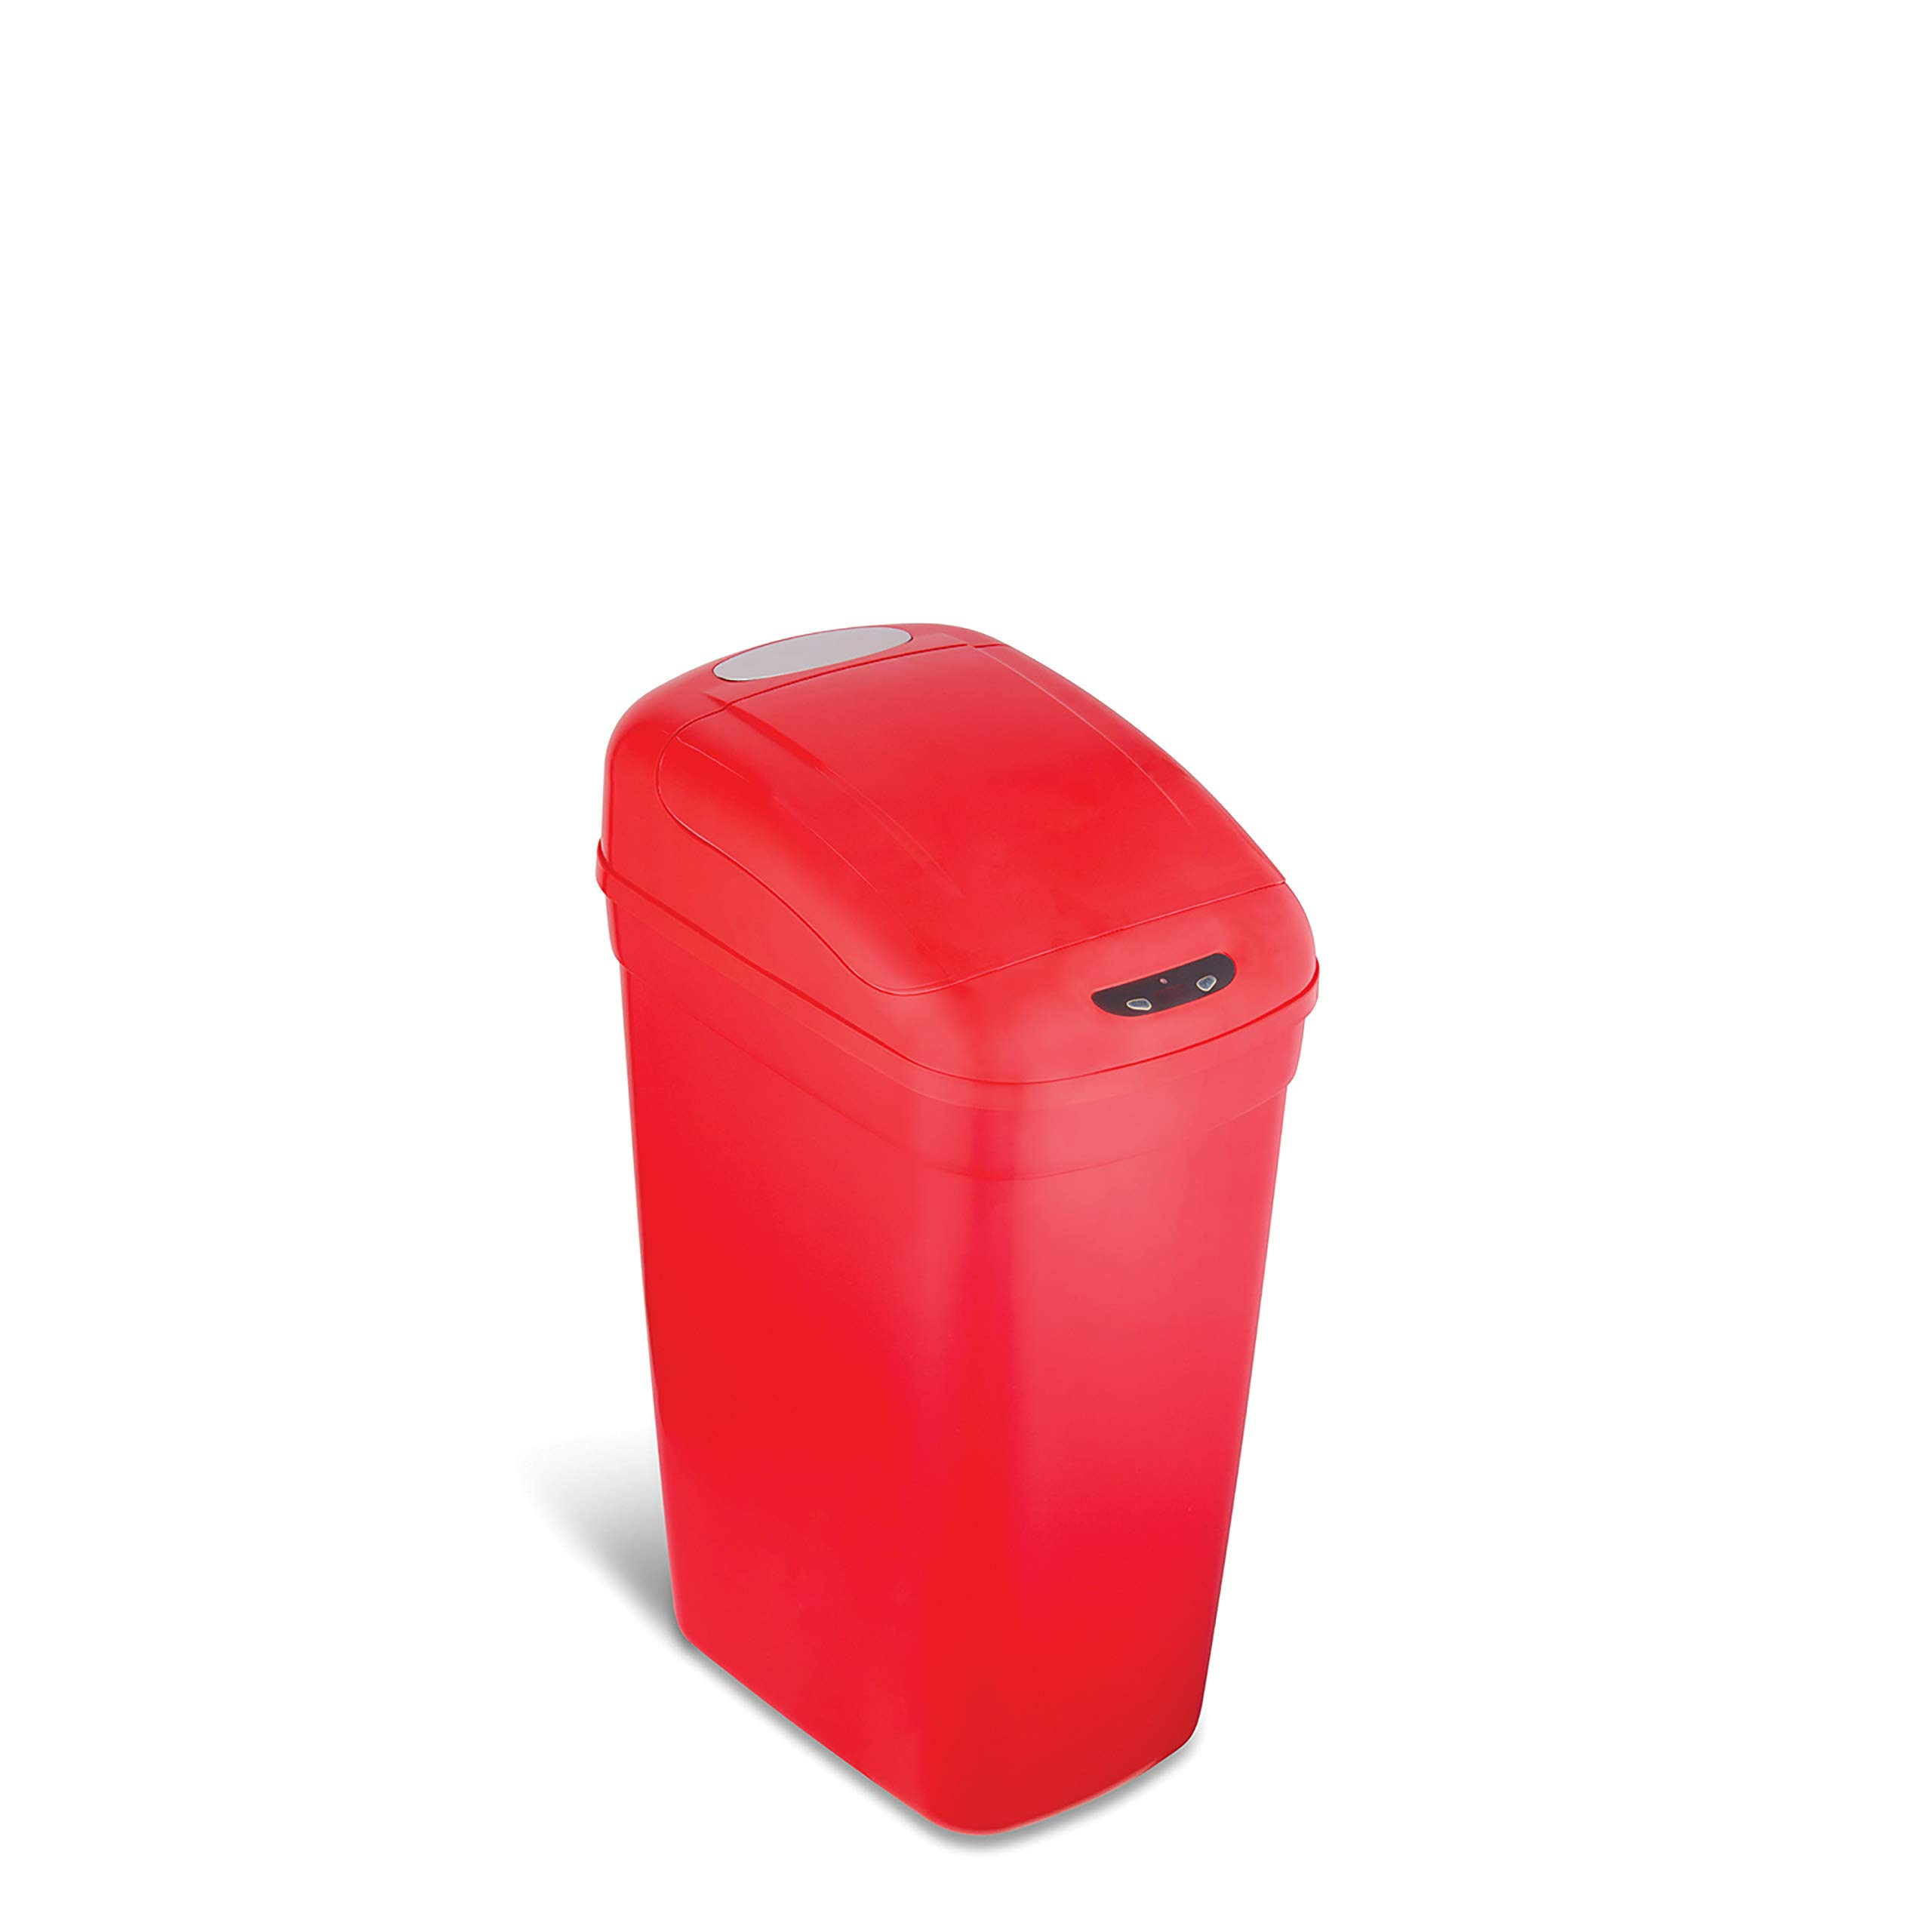 NINESTARS DZT-27-1R Automatic Touchless Infrared Motion Sensor Trash Can, 7 Gal 27L, (Rectangular, Red Lid)